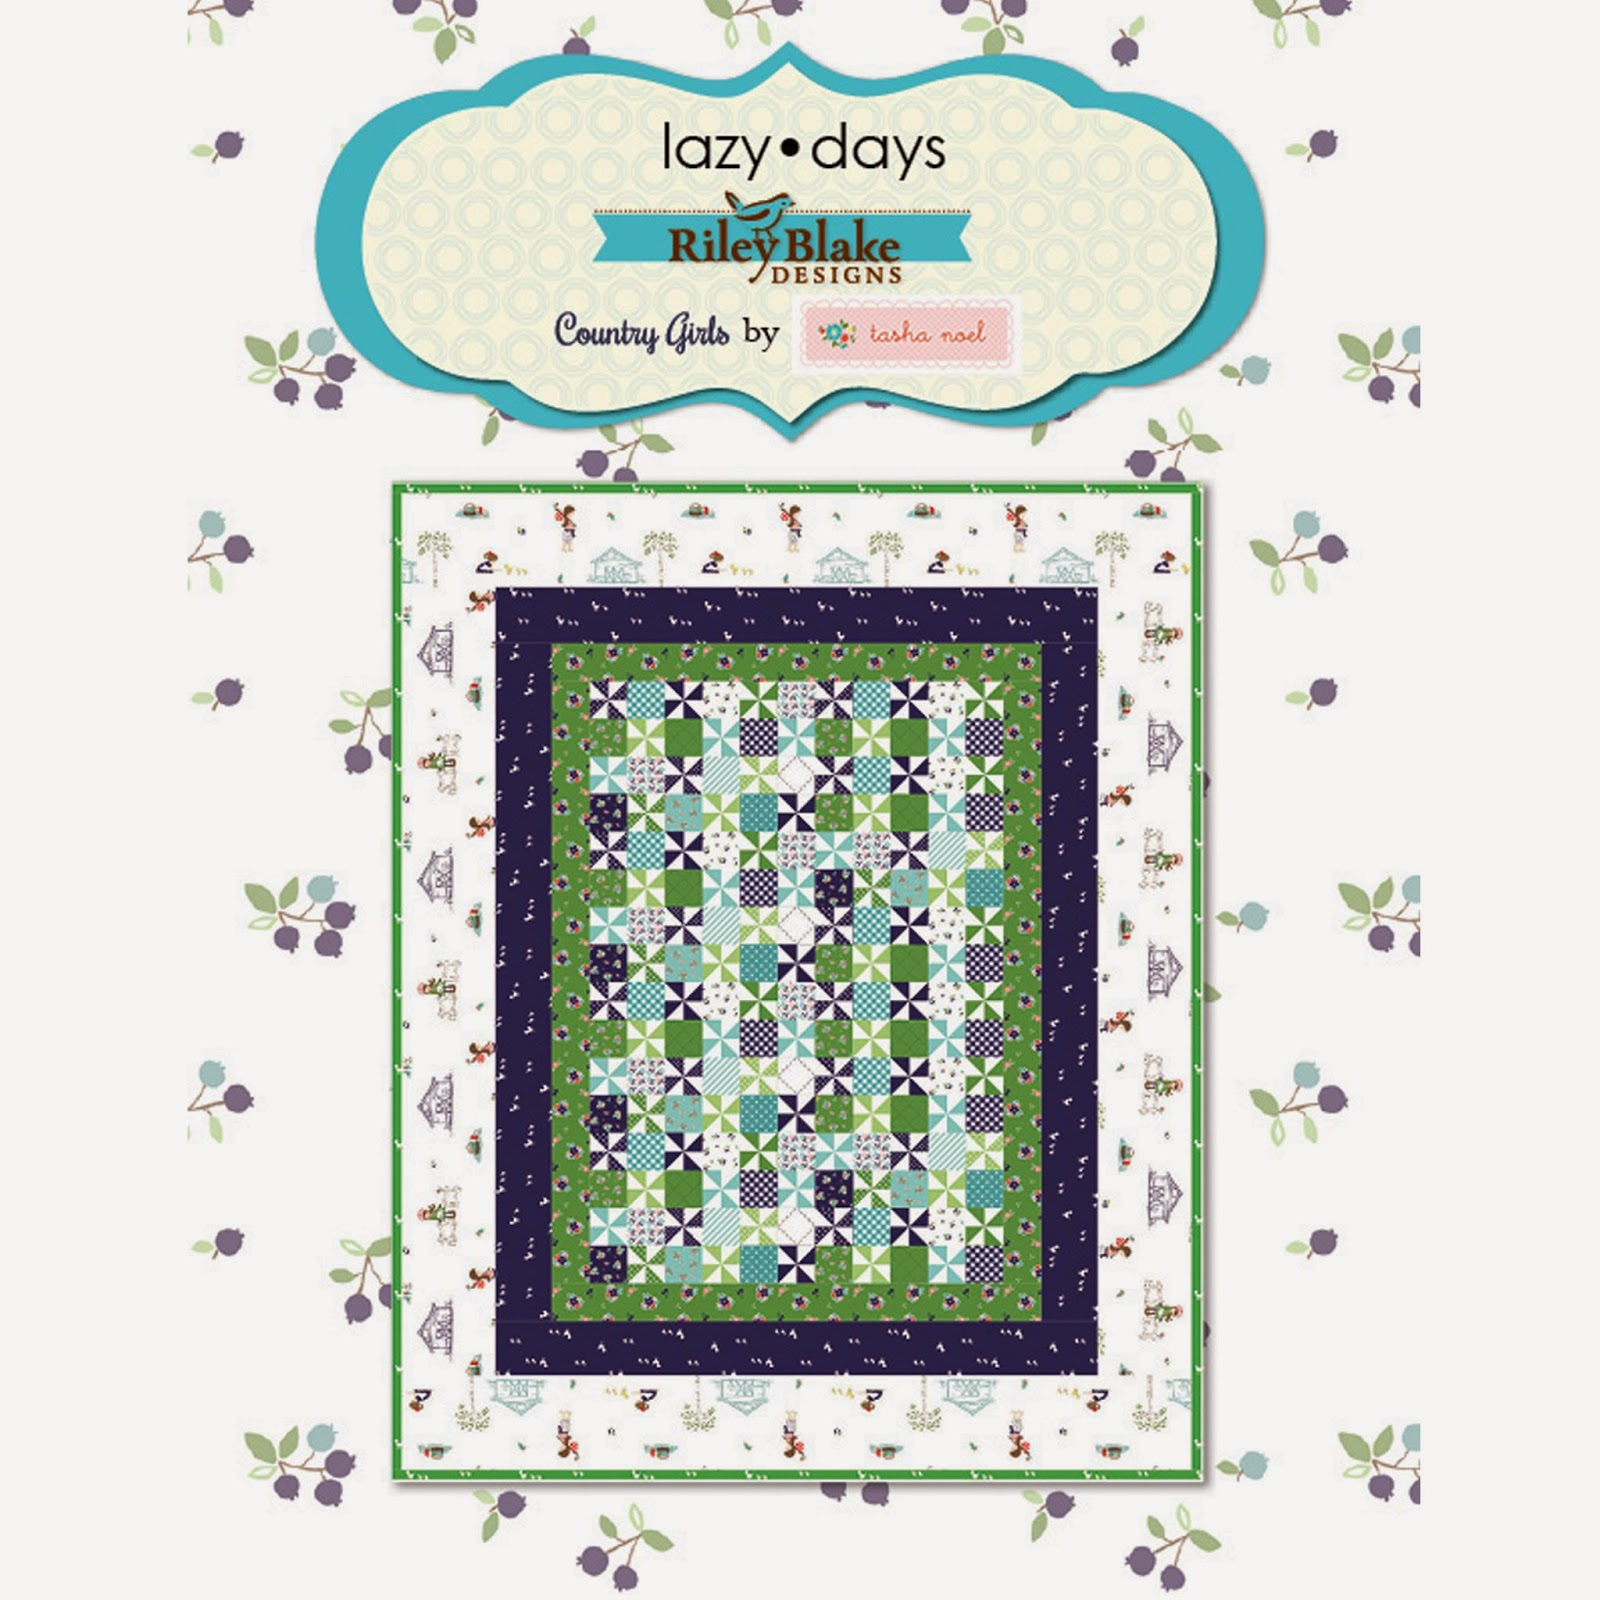 Free Quilt Pattern using Riley Blake Designs COUNTRY GIRLS Quilt Fabric by Tasha Noel